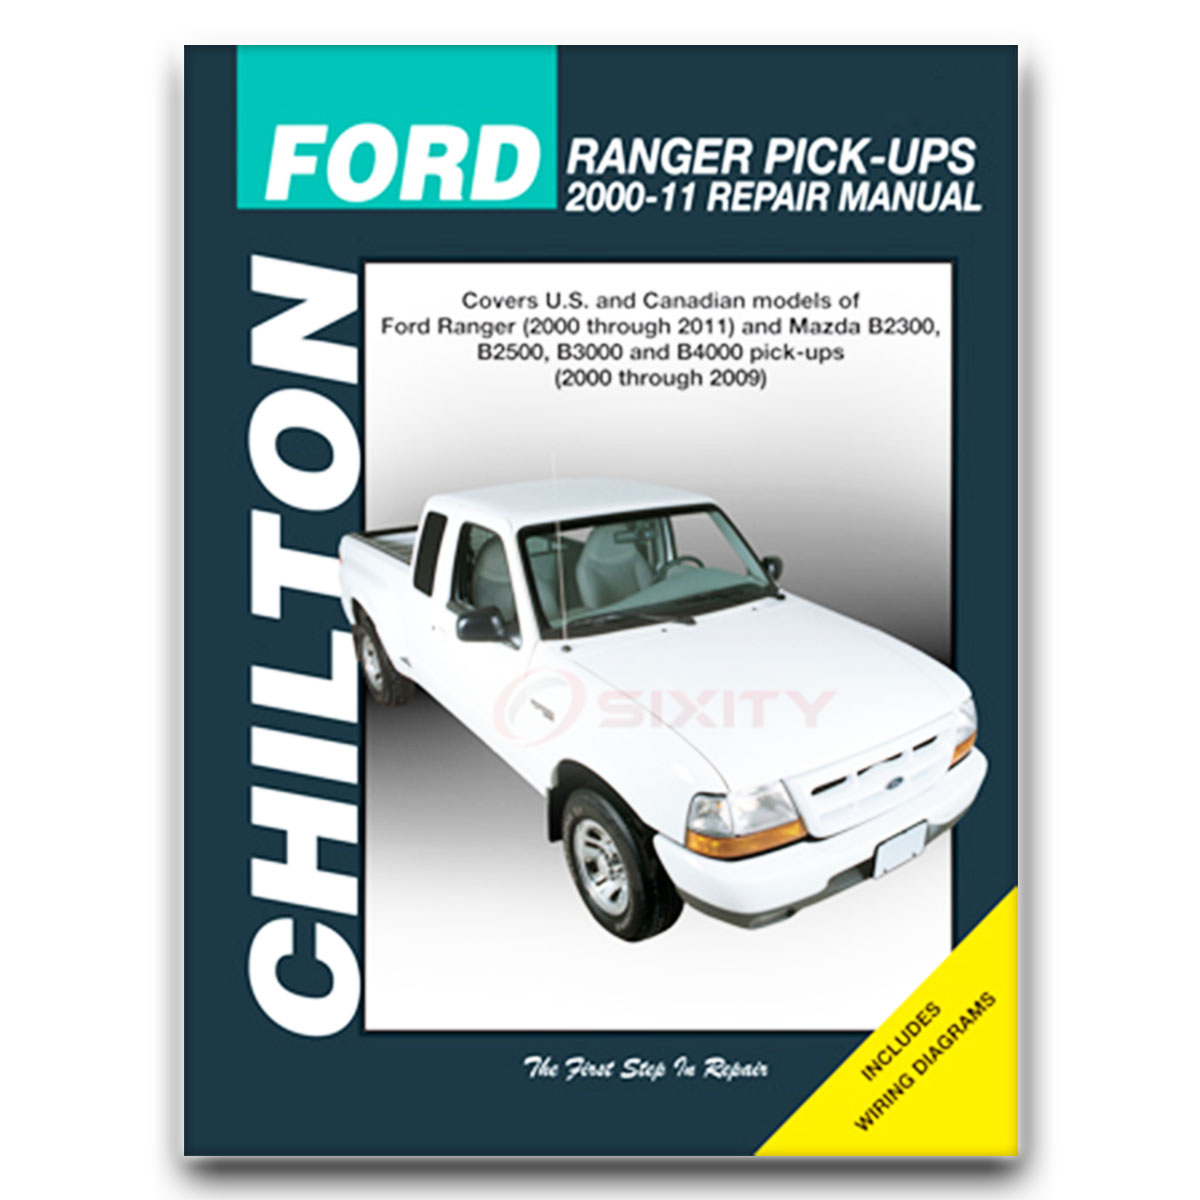 Chilton Repair Manual for Ford Ranger FX4 STX Edge XLT Sport Tremor Shop fq